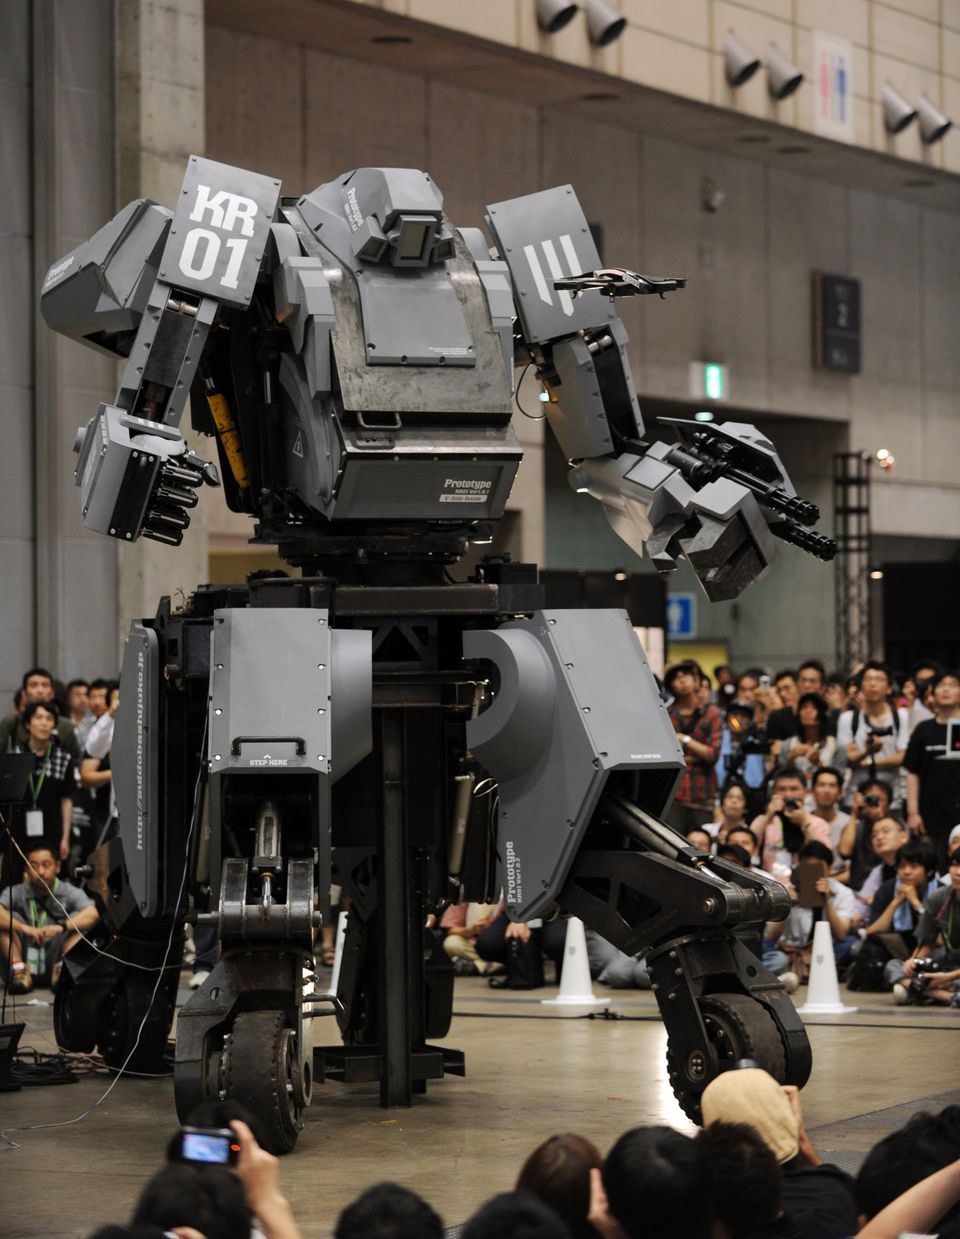 Japanese electronics company Suidobashi Heavy Industry unveils its latest robot 'Kuratas' (C) as a crowd of people take photo